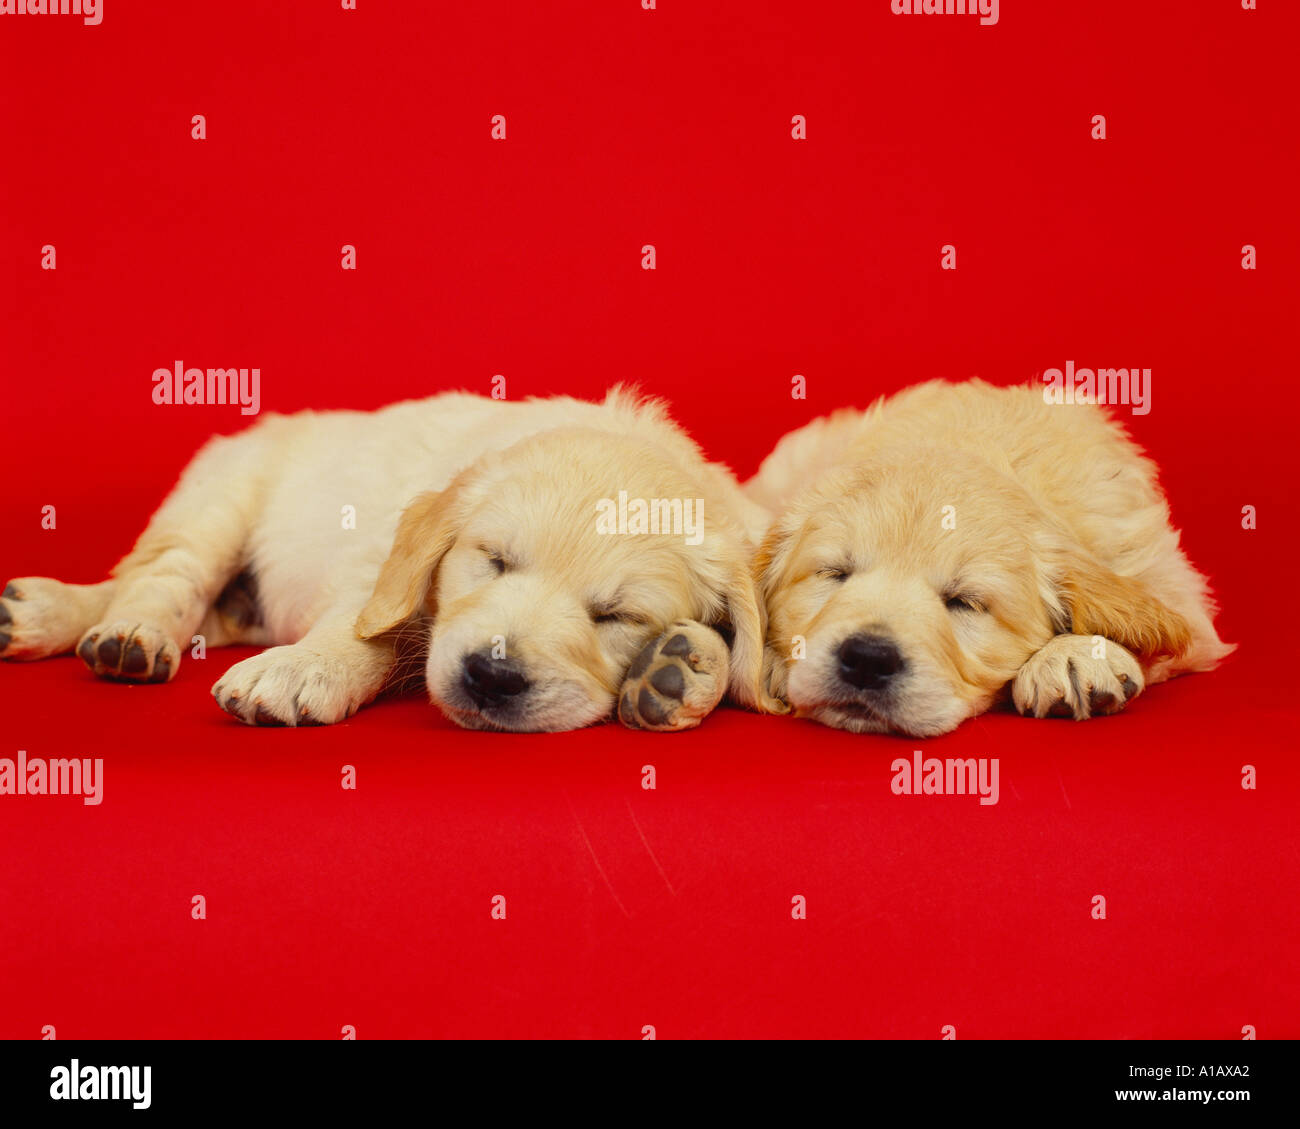 two golden labrador pups sleeping on a red backdrop, - Stock Image